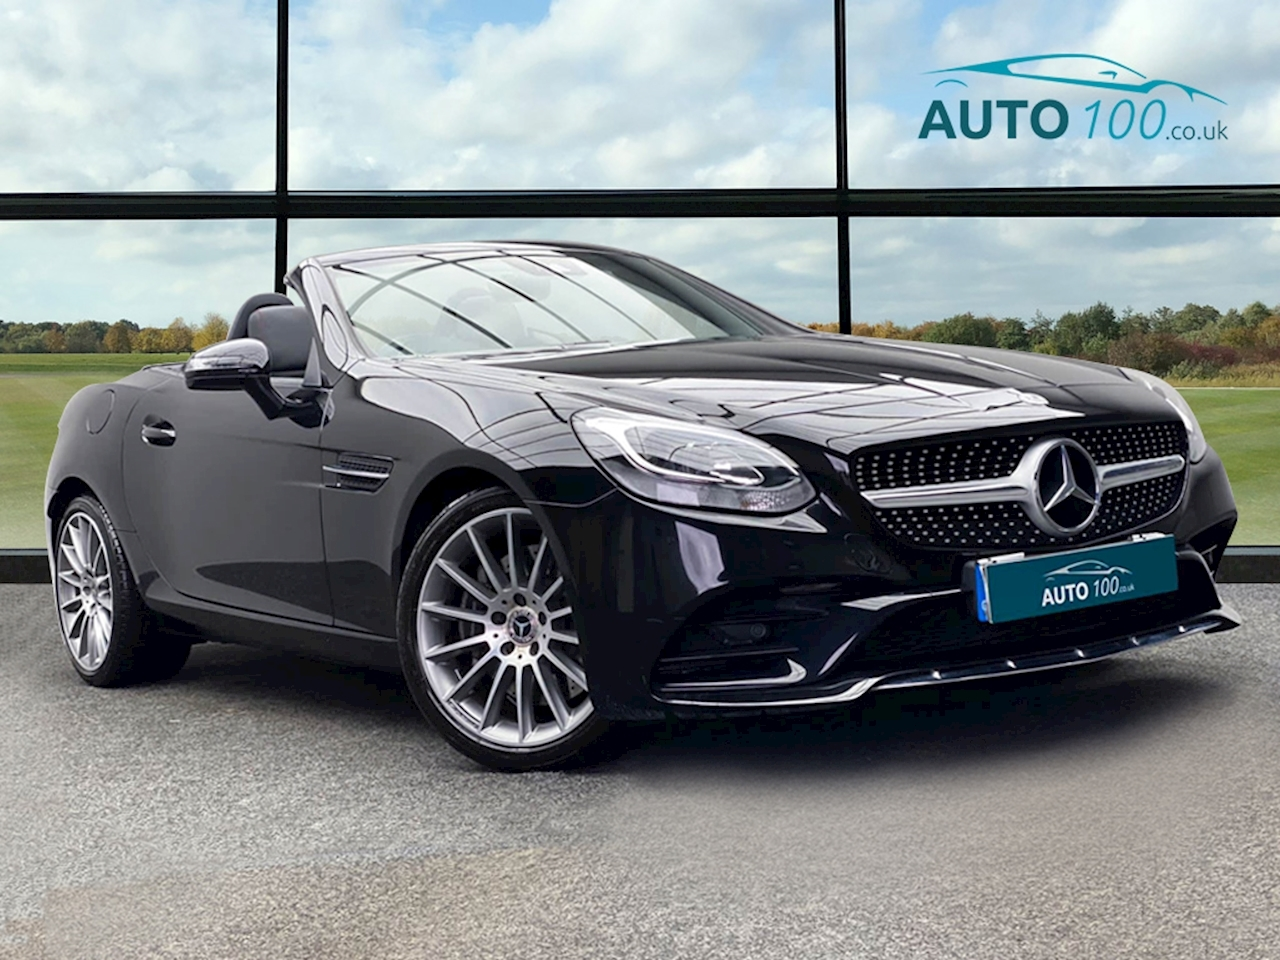 Mercedes-Benz SLC AMG Line Convertible 2.1 G-Tronic Diesel